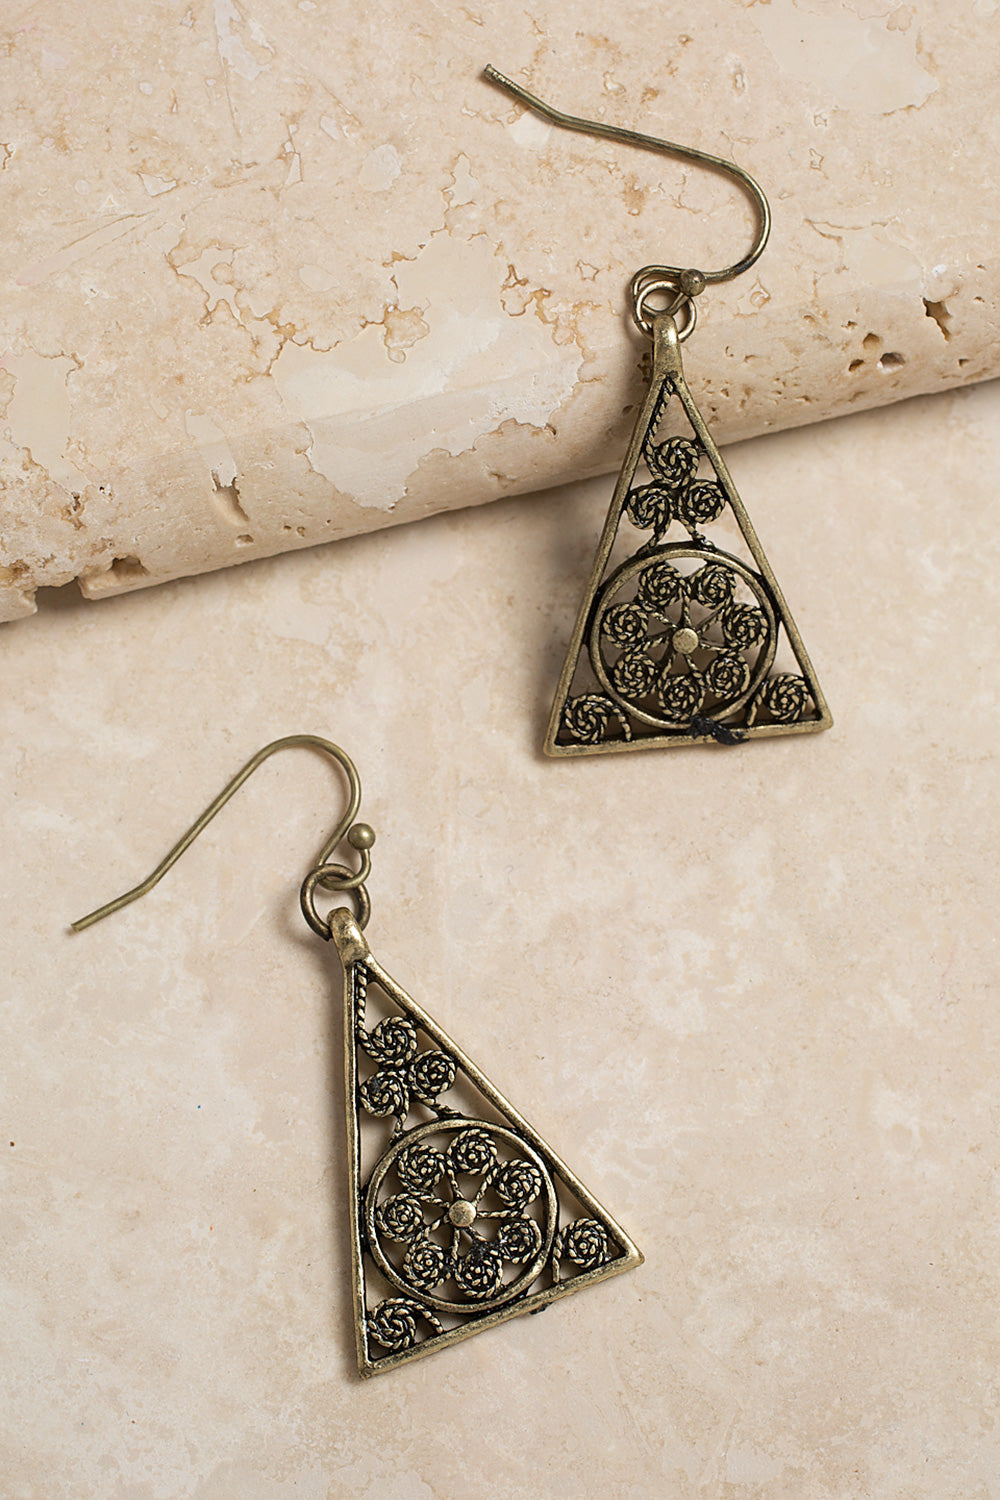 Type 3 Edgy Detail Earrings